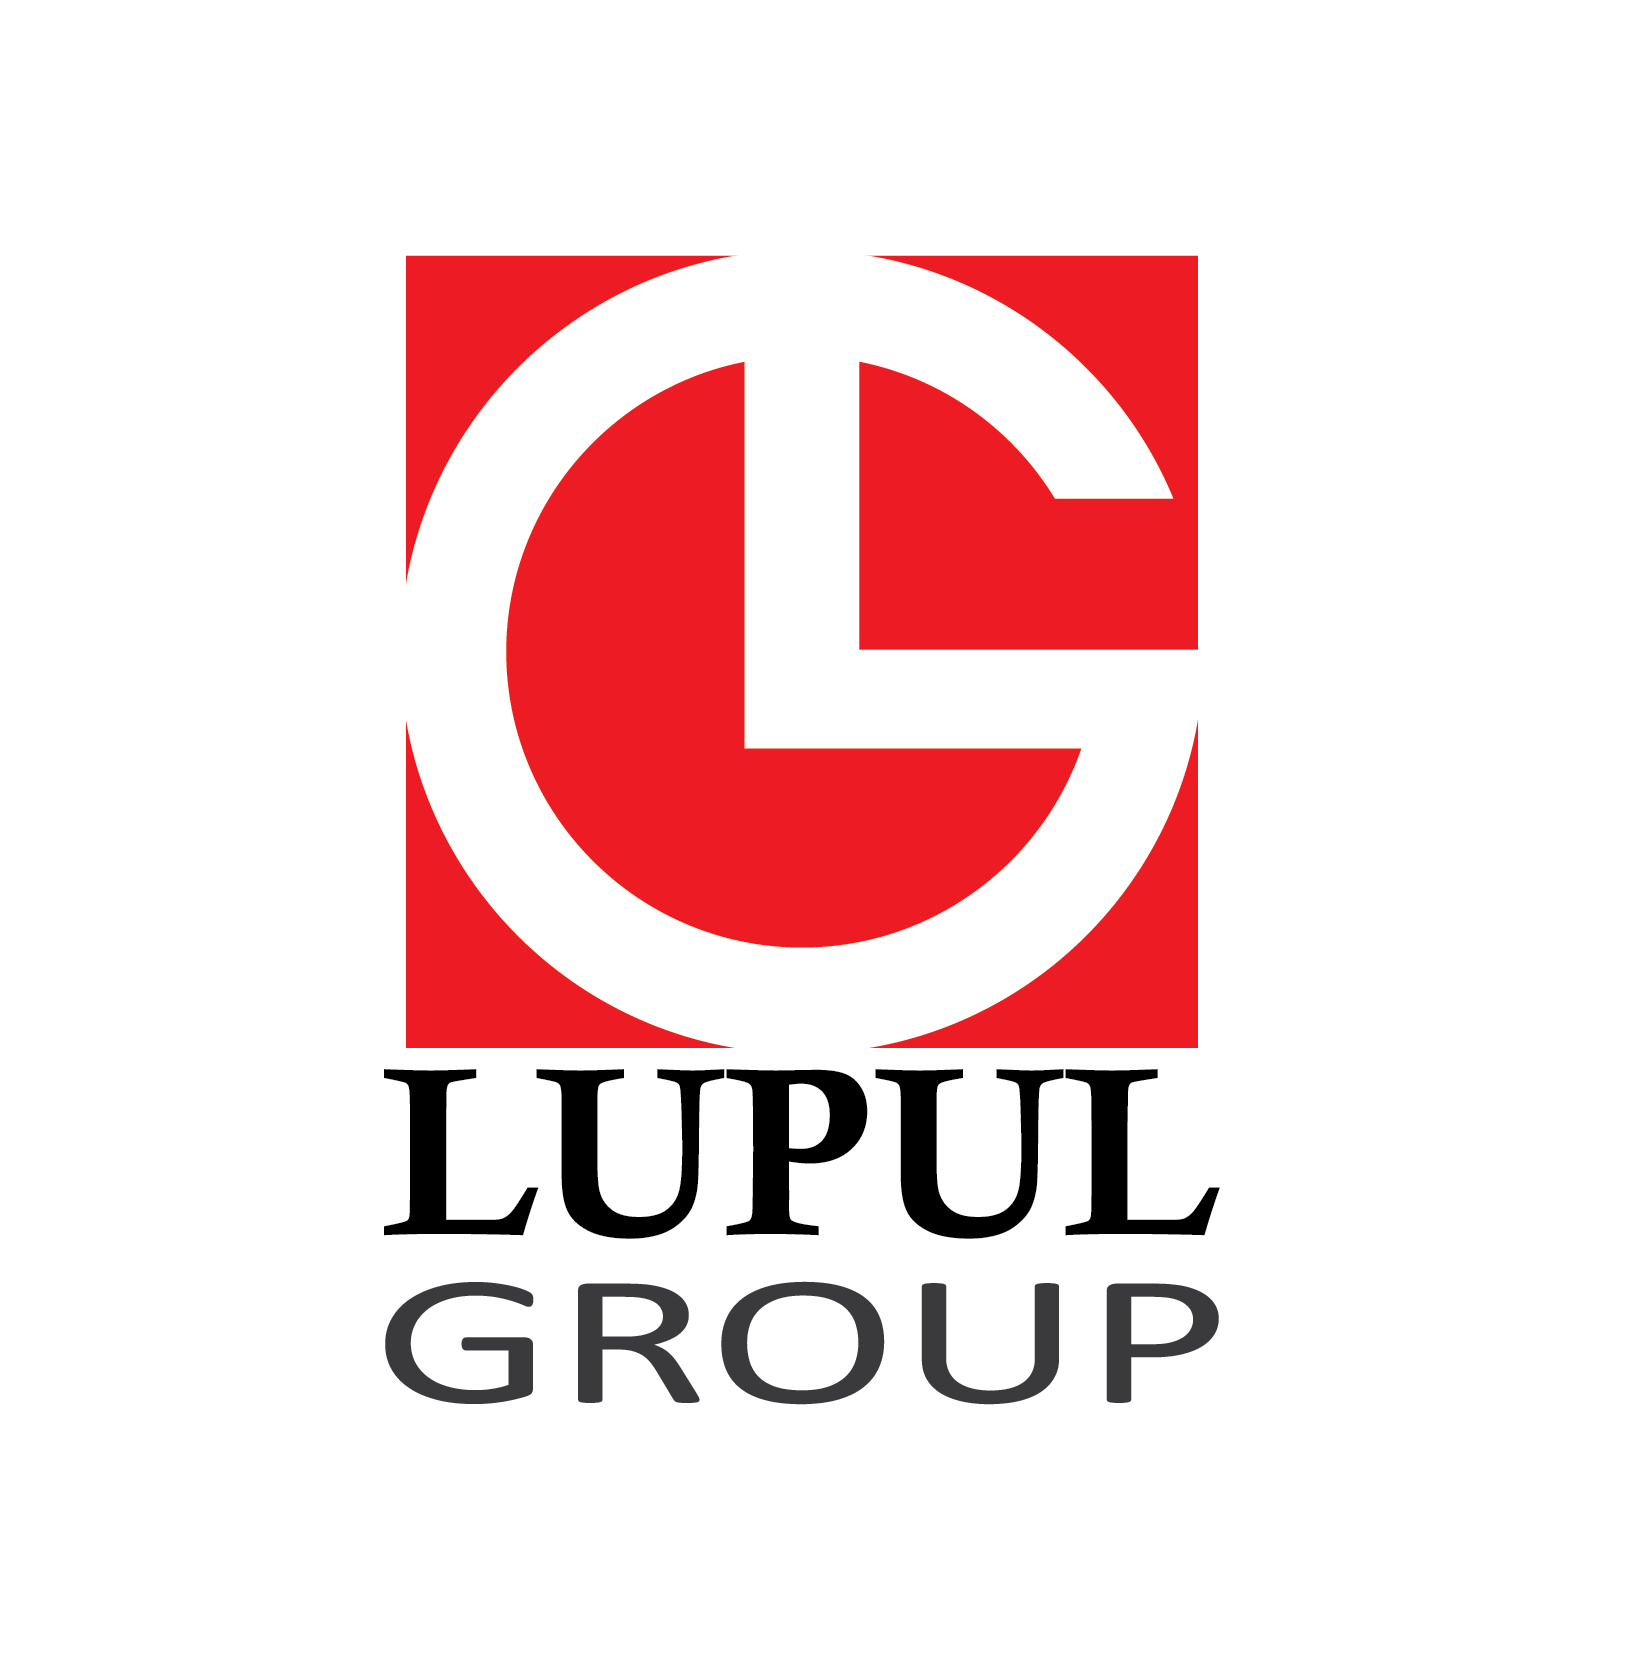 Logo Design by Jerico Catipay - Entry No. 228 in the Logo Design Contest Logo Design for: The Lupul Group.